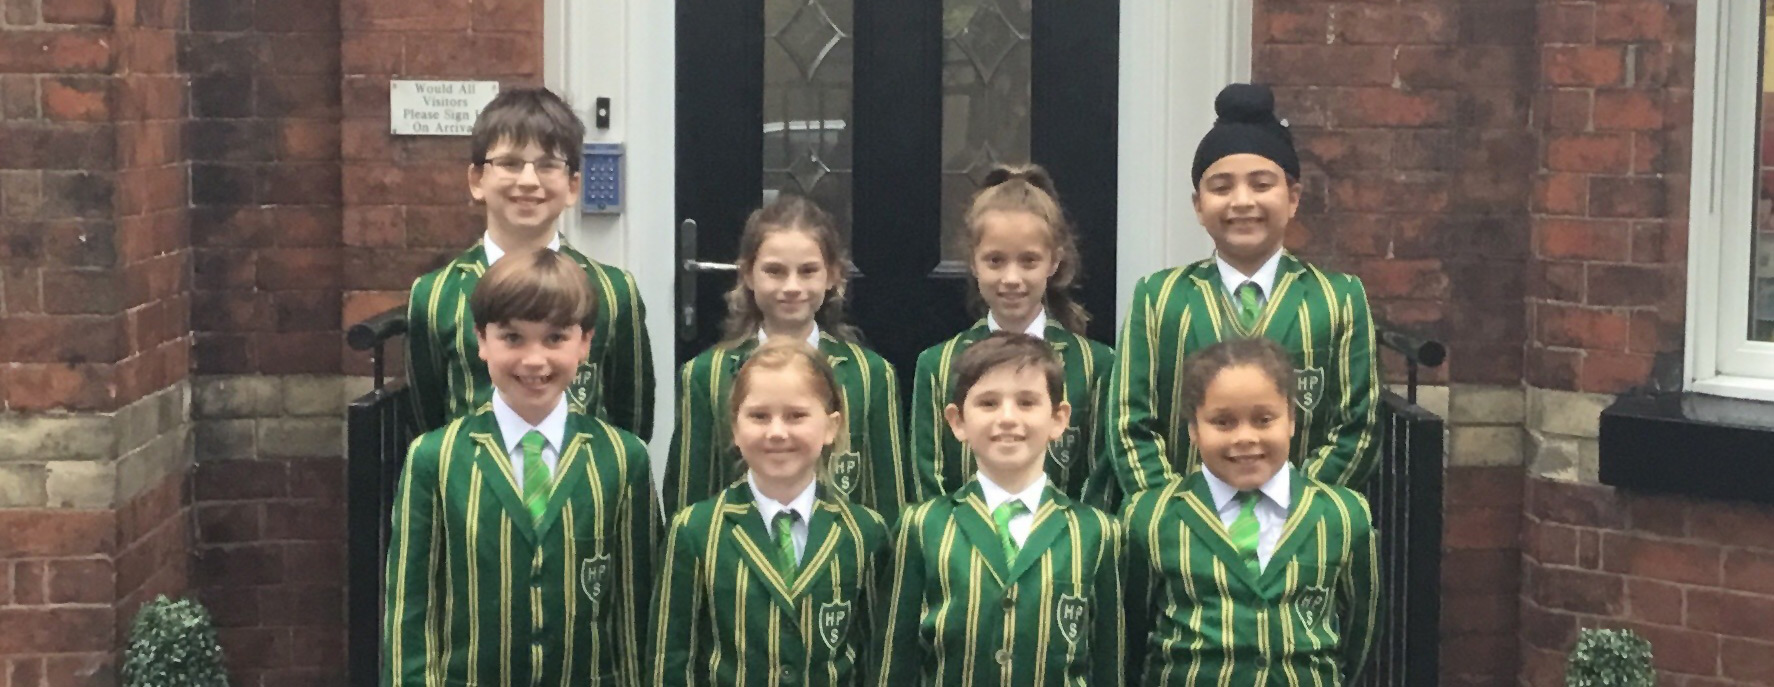 Hale Prep School - School Council 2019 - 2020